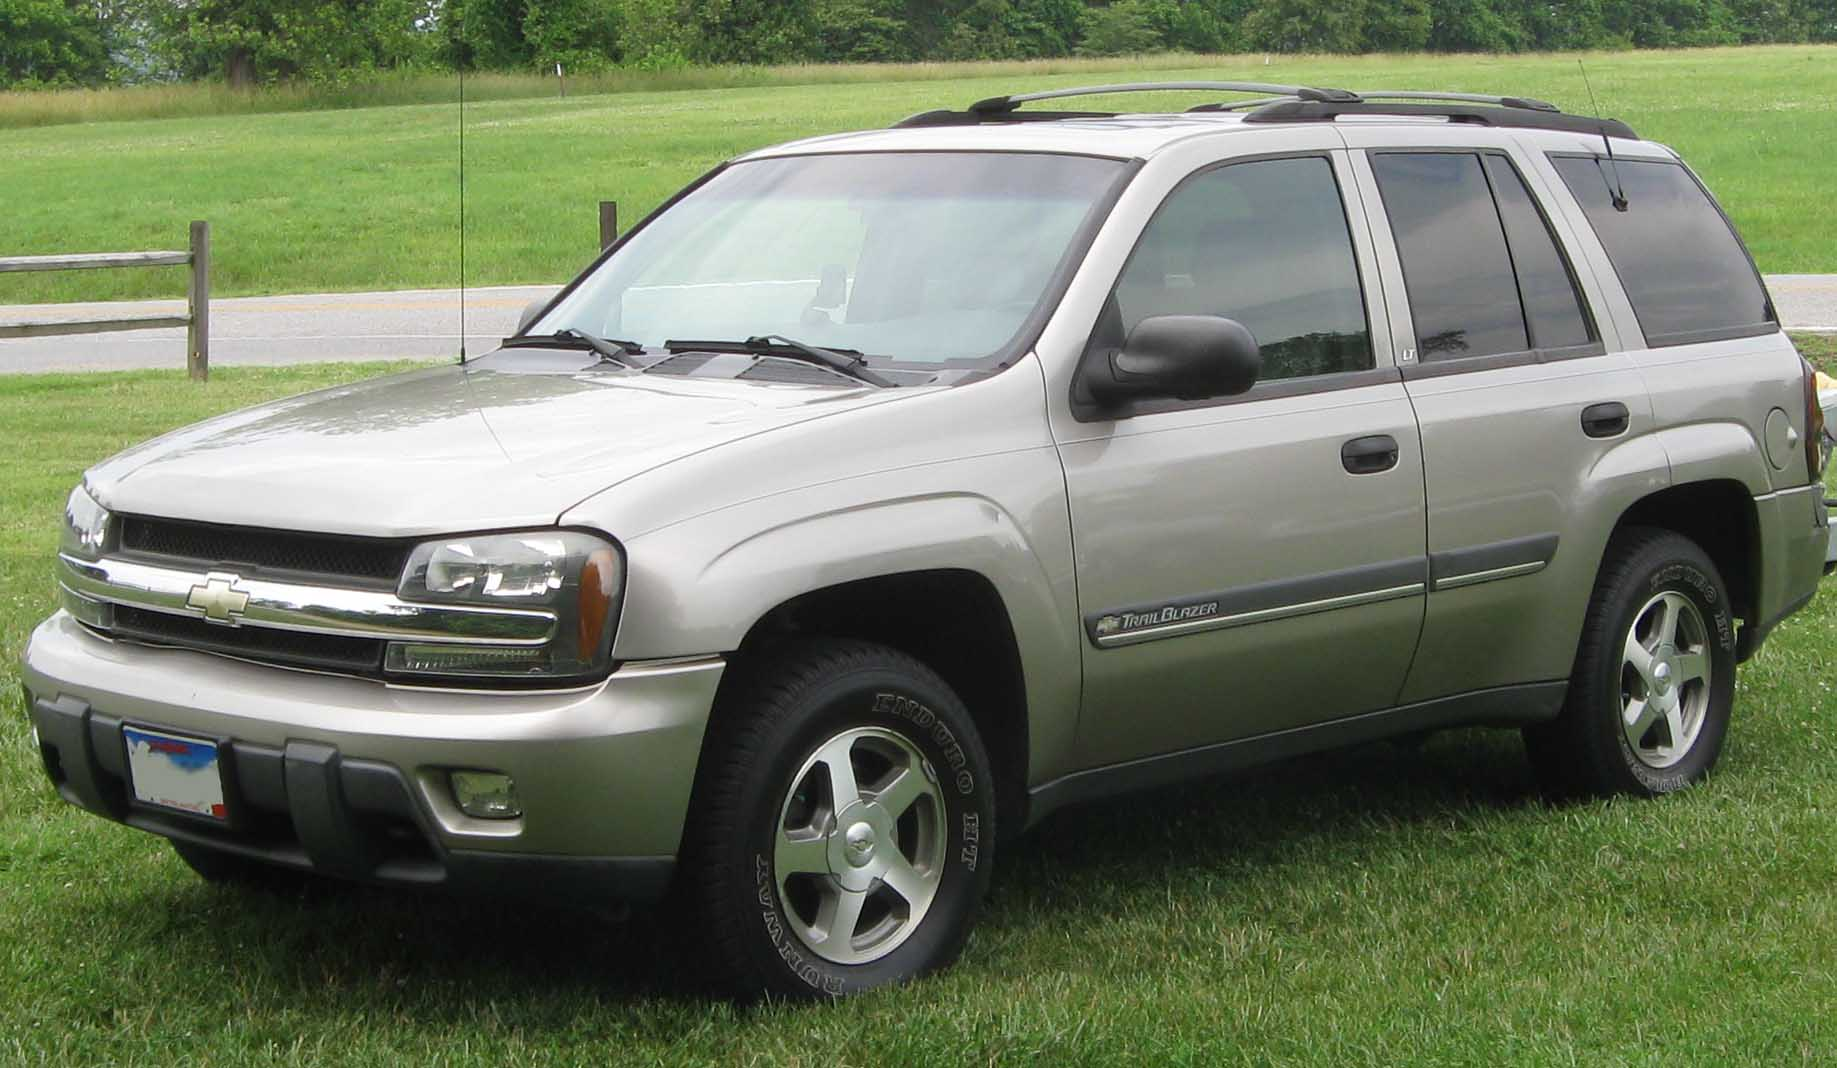 Chevrolet_TrailBlazer_ _06 05 2010 chevrolet trailblazer wikipedia